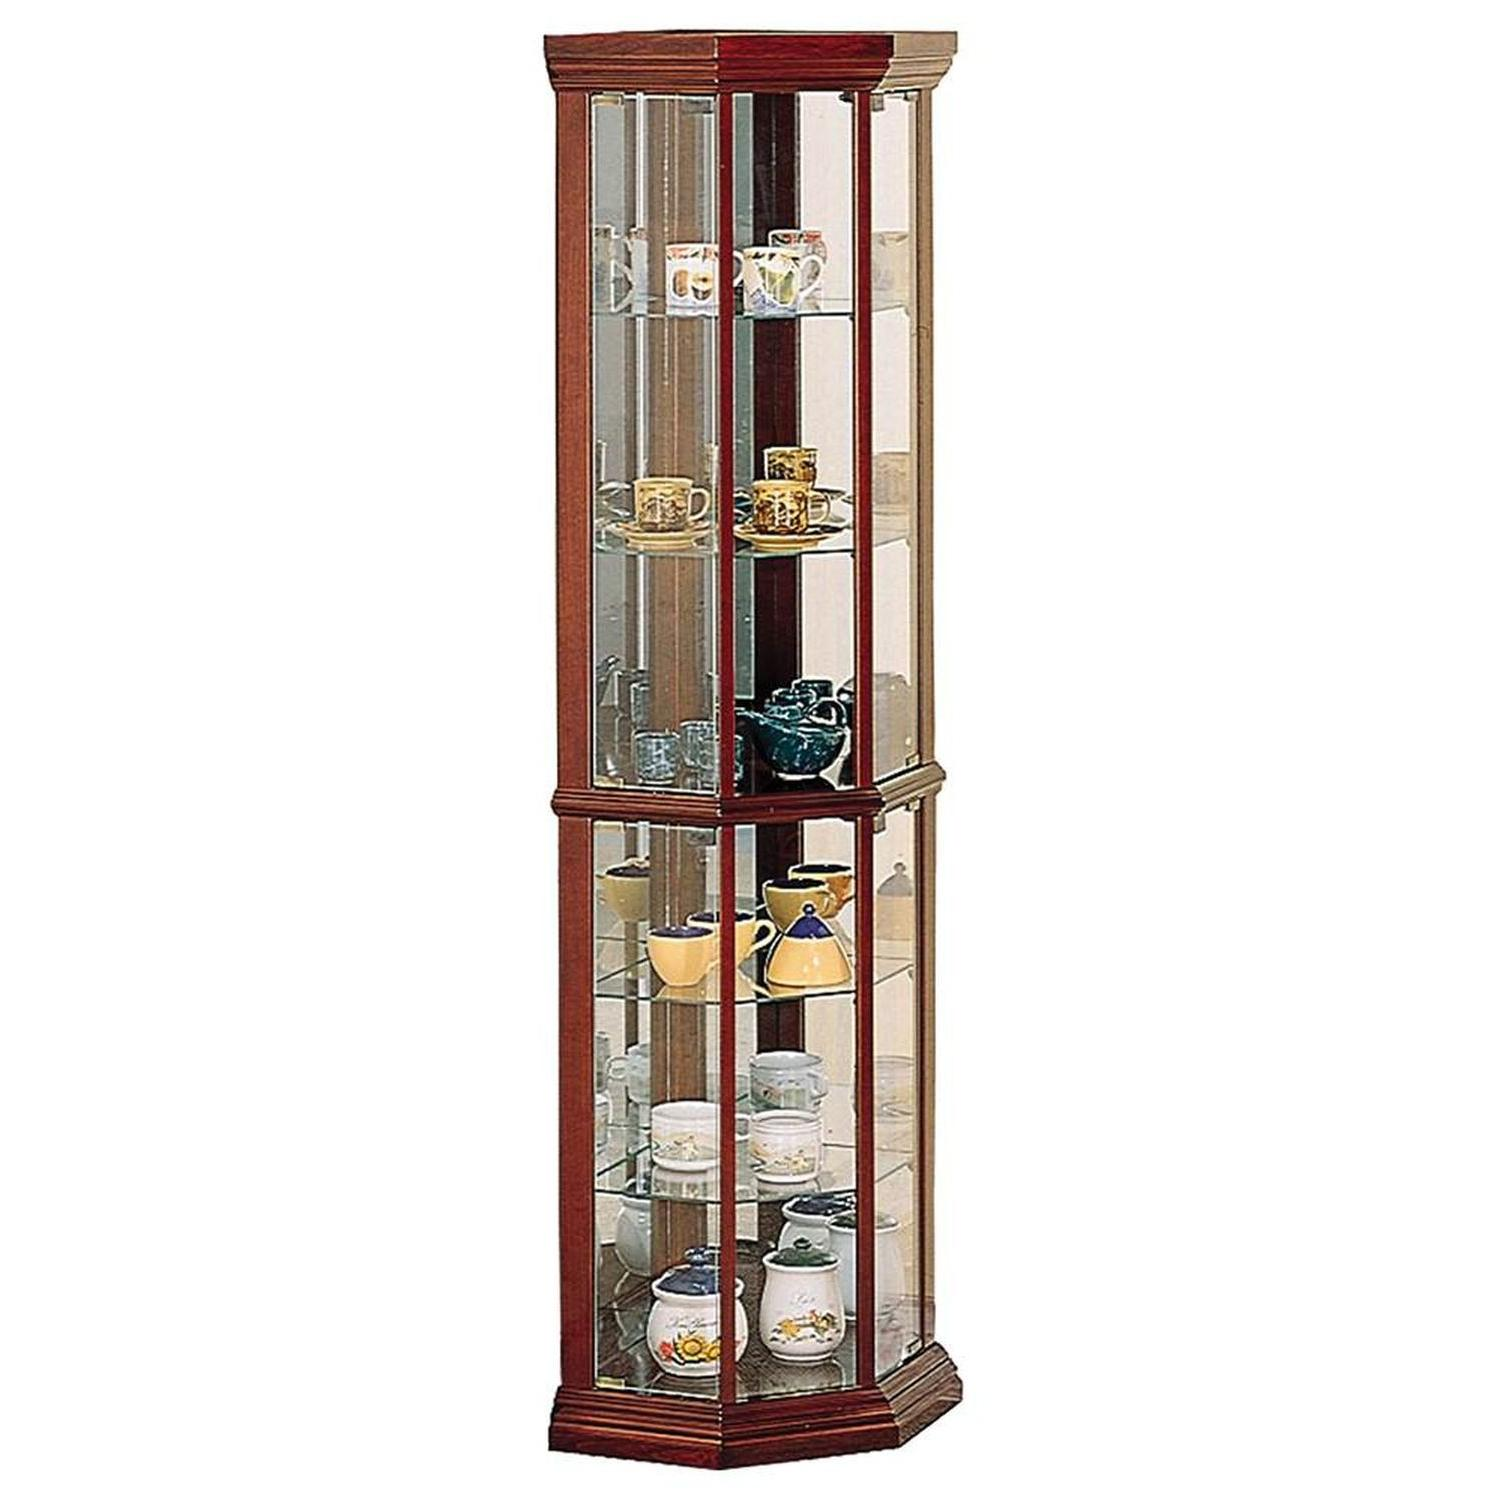 Curio Cabinet in Warm Brown w/ Glass Panels - image-0